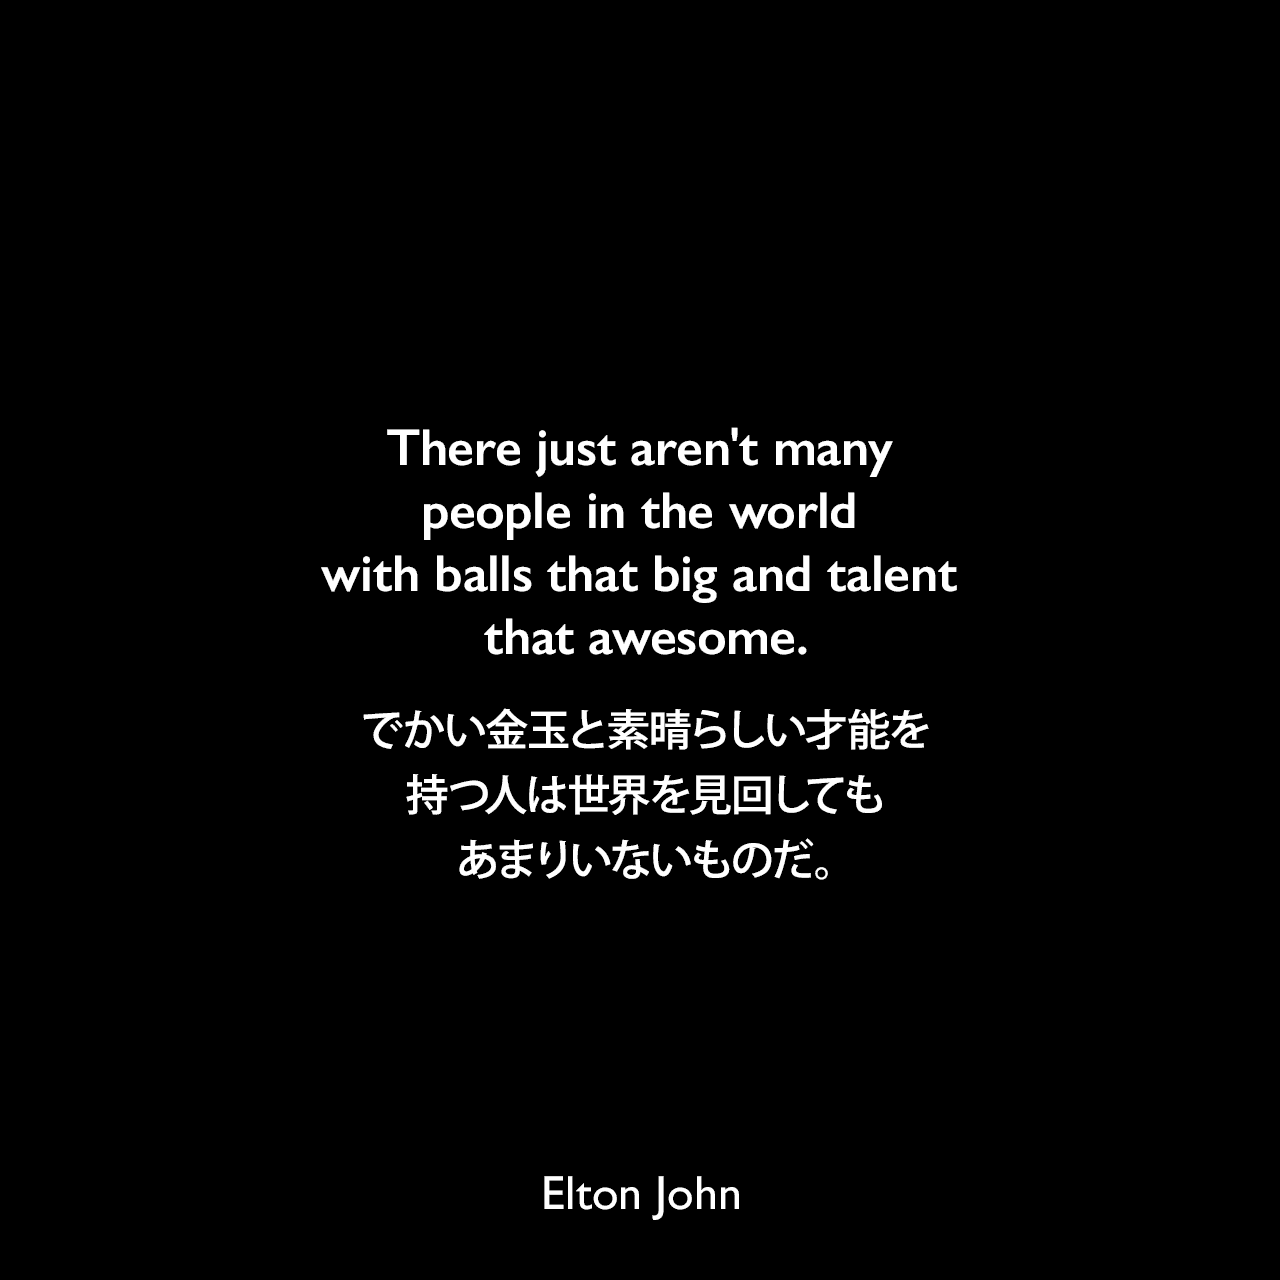 There just aren't many people in the world with balls that big and talent that awesome.でかい金玉と素晴らしい才能を持つ人は世界を見回してもあまりいないものだ。- 2001年 グラミー賞でエミネムと共演後にElton John